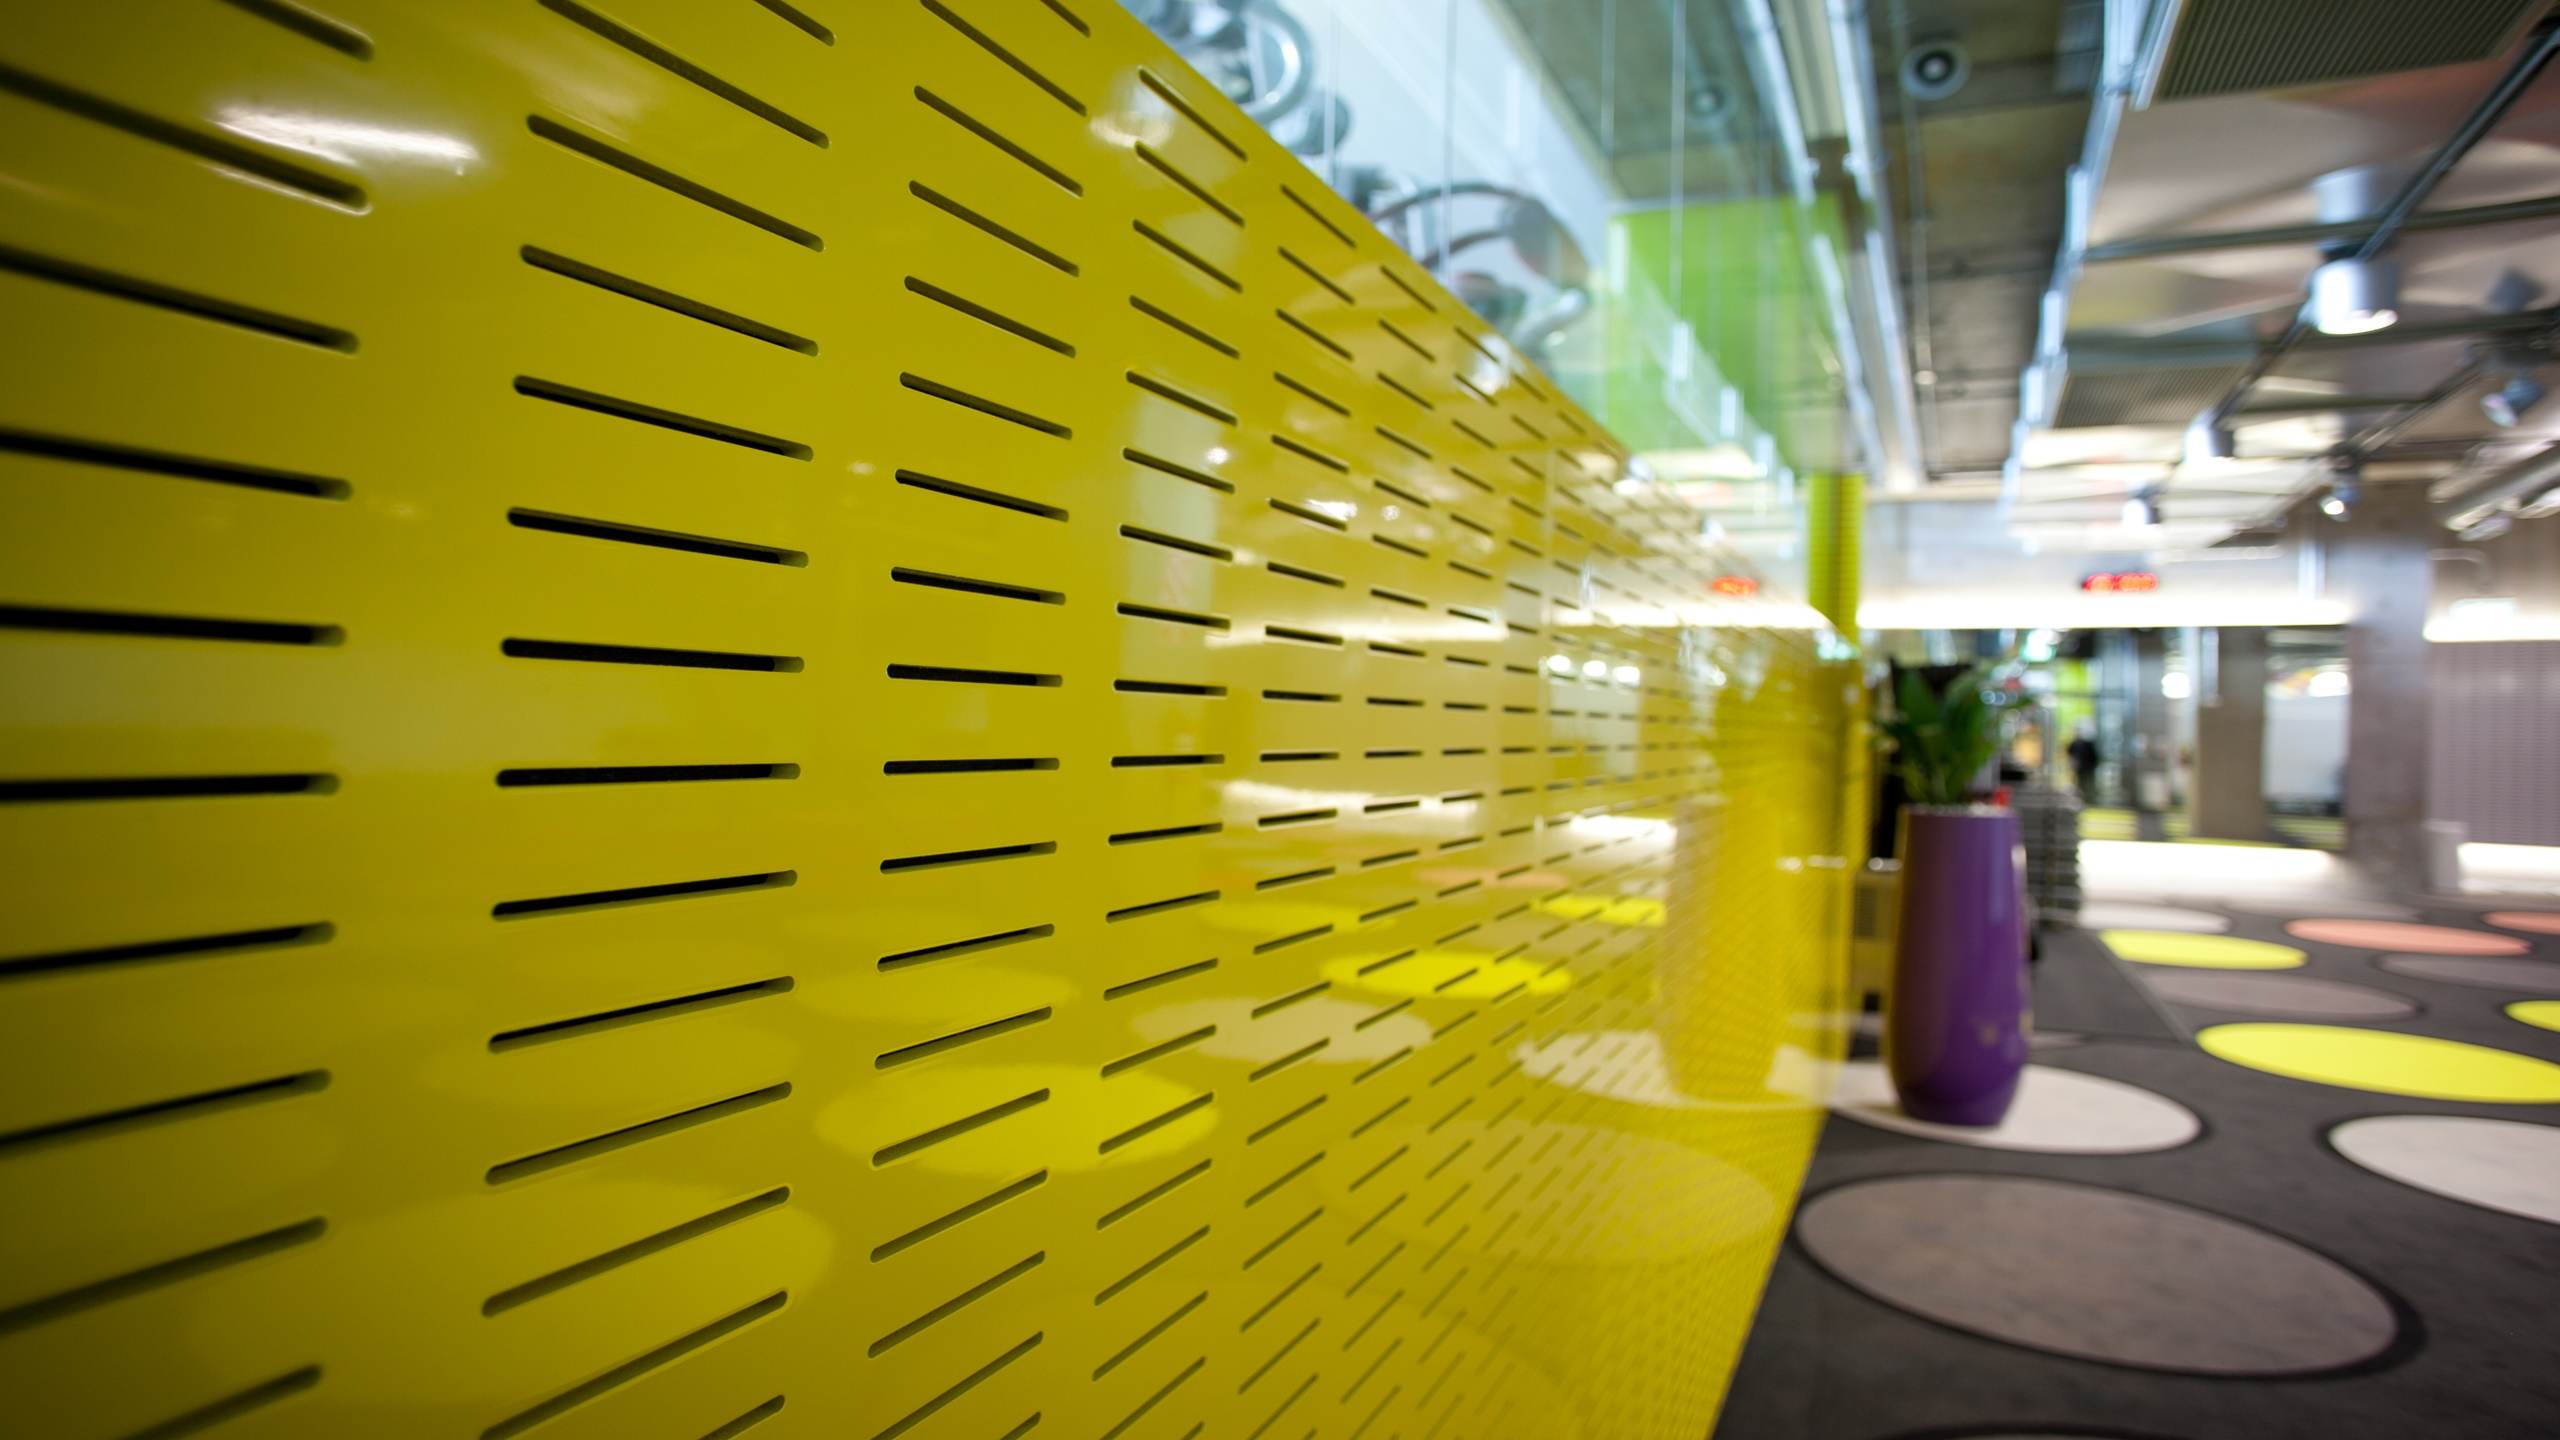 Les Mills Gym Britomart showing Audi Slot in painted yellow with gloss lacquer finish